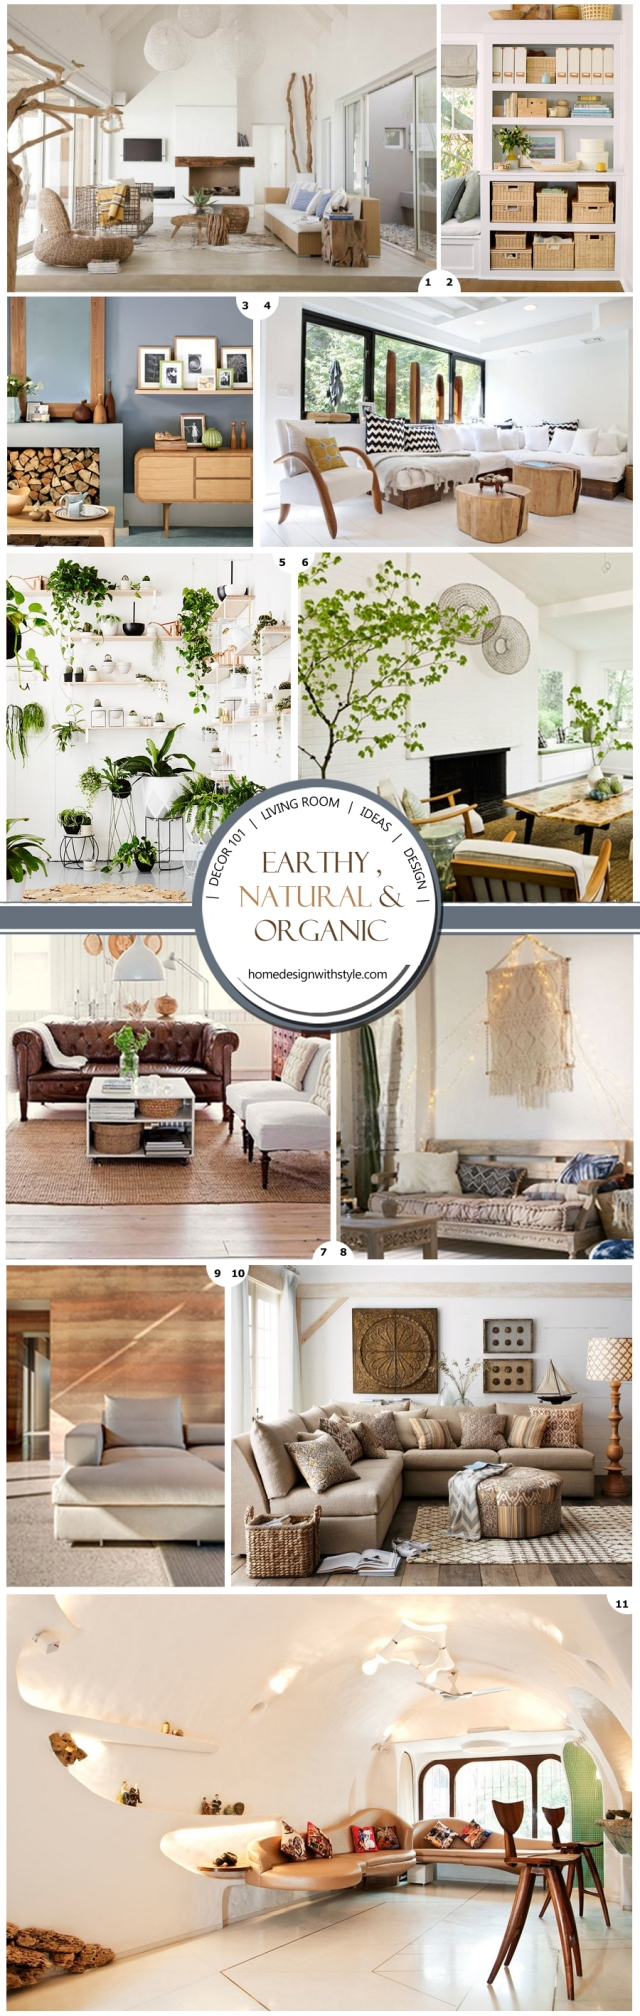 Earhty Natural Living Room Decor Pin